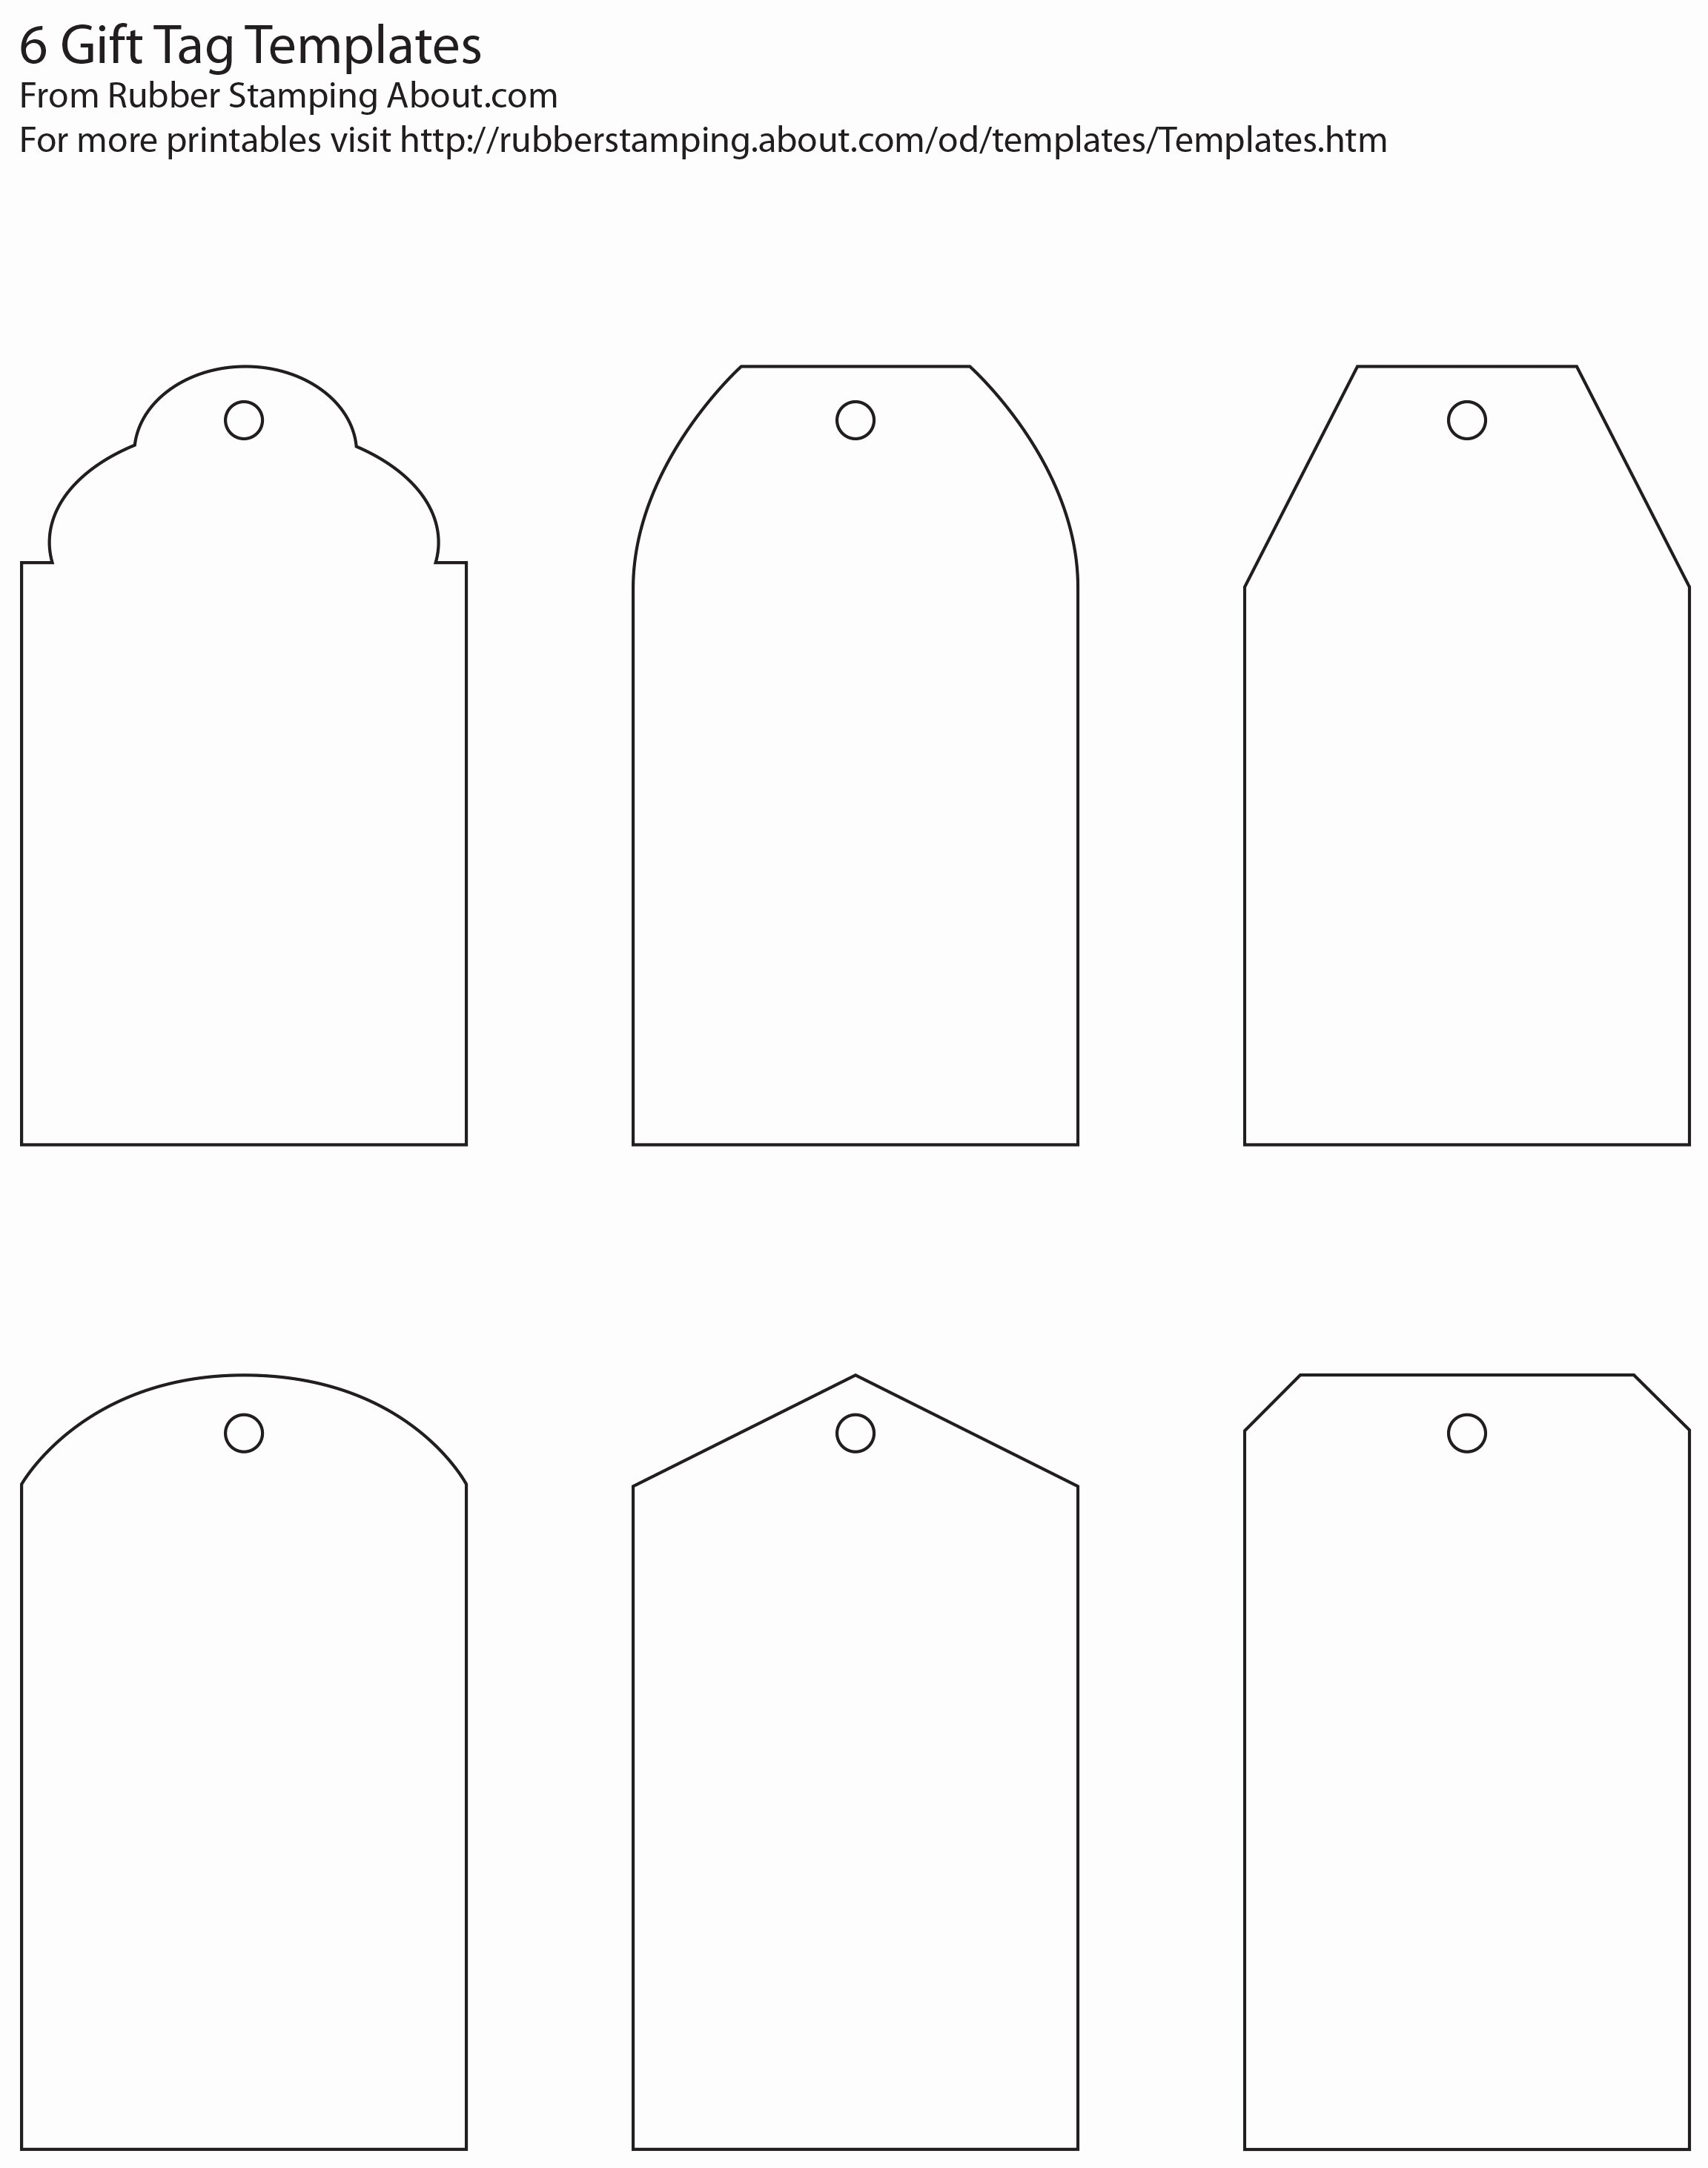 Blank Gift Tag Template Inspirational Make Your Own Custom Gift Tags with these Free Printable